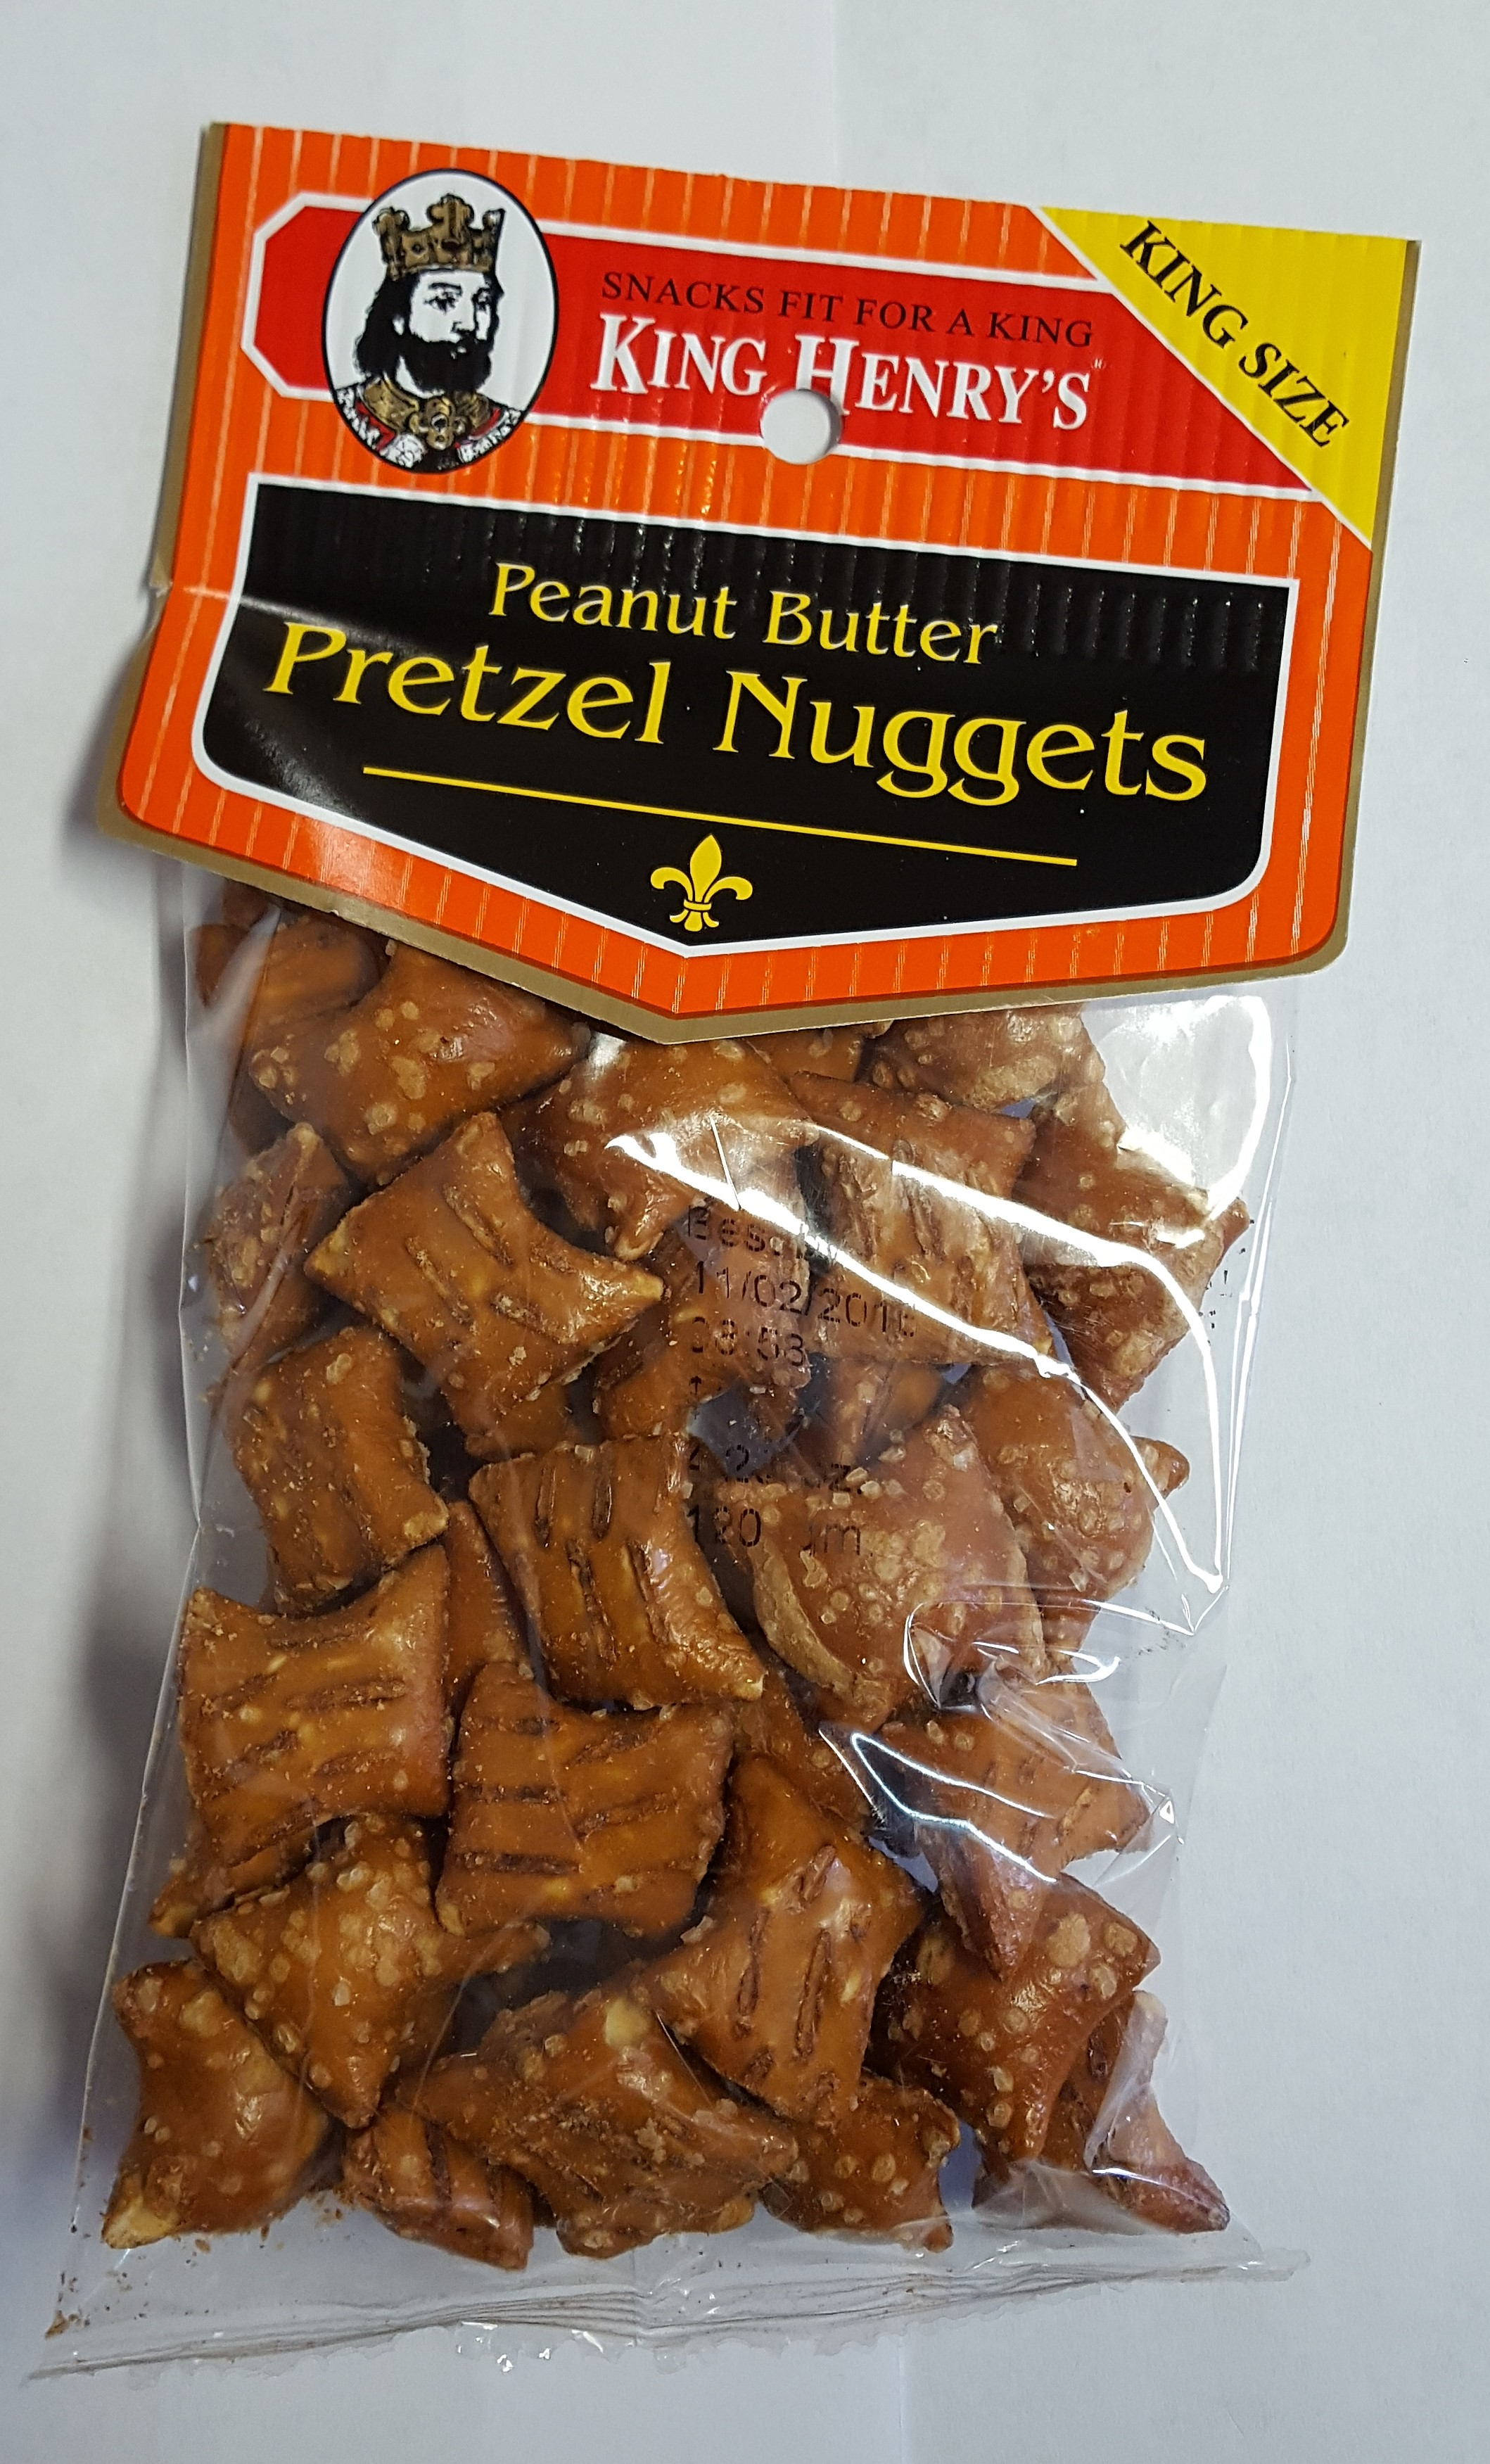 King Henry's Peanut Butter Pretzel Nuggets